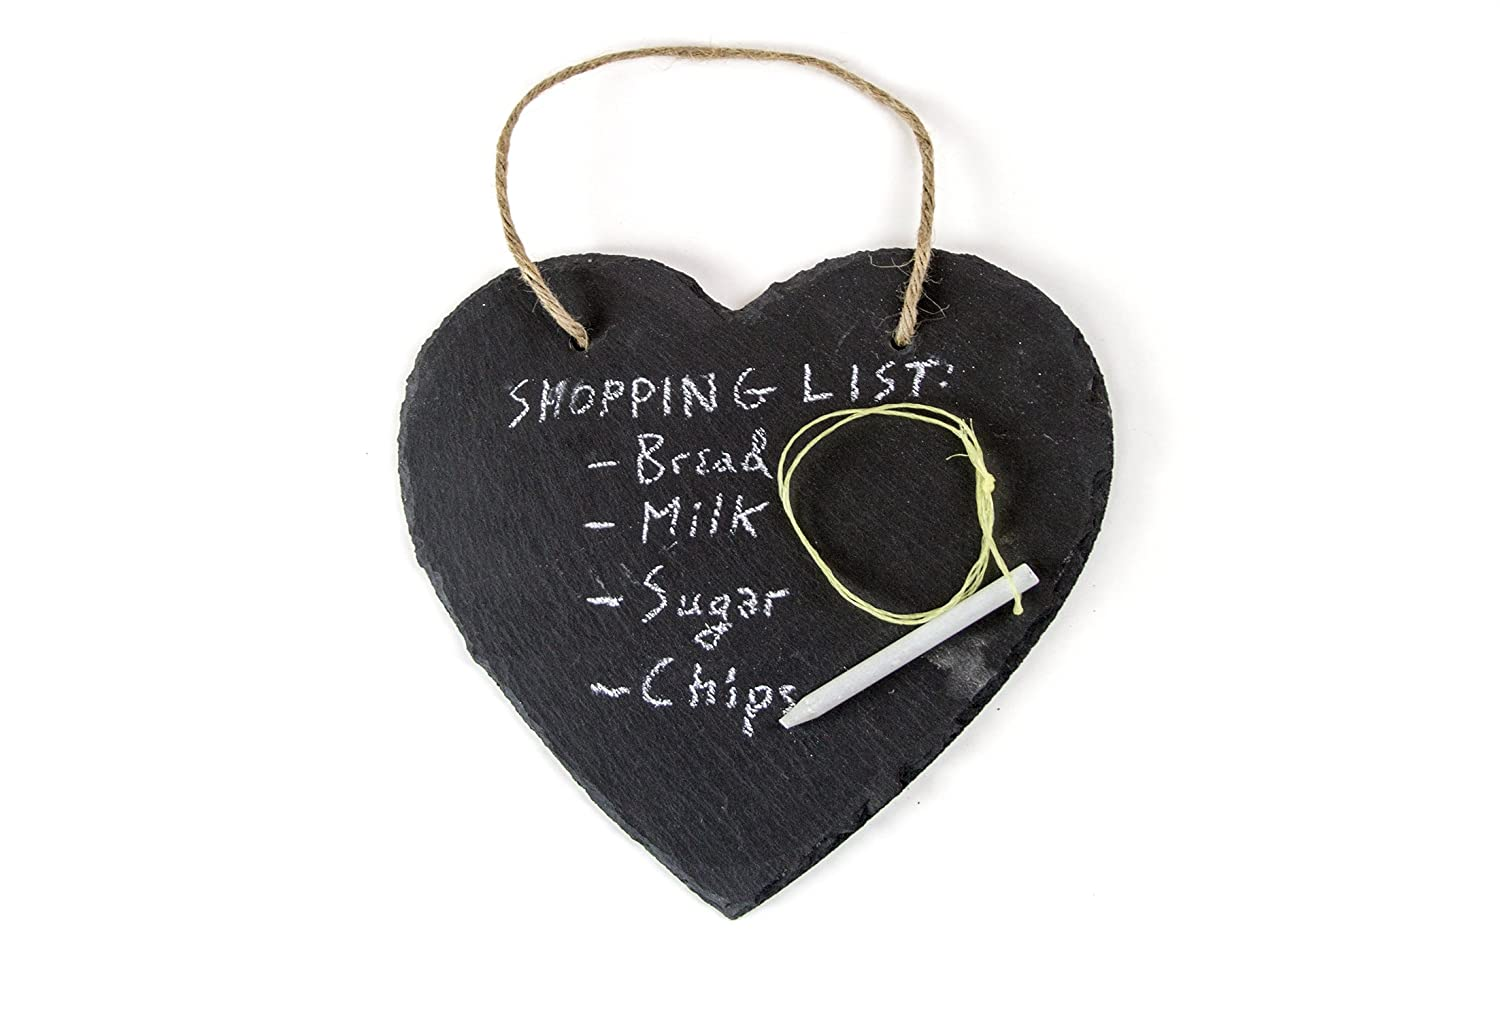 FRESHeTECH Slate Heart Kitchen Hanging Chalkboard - Great for Writing Morning Notes with Chalk 7 1/2